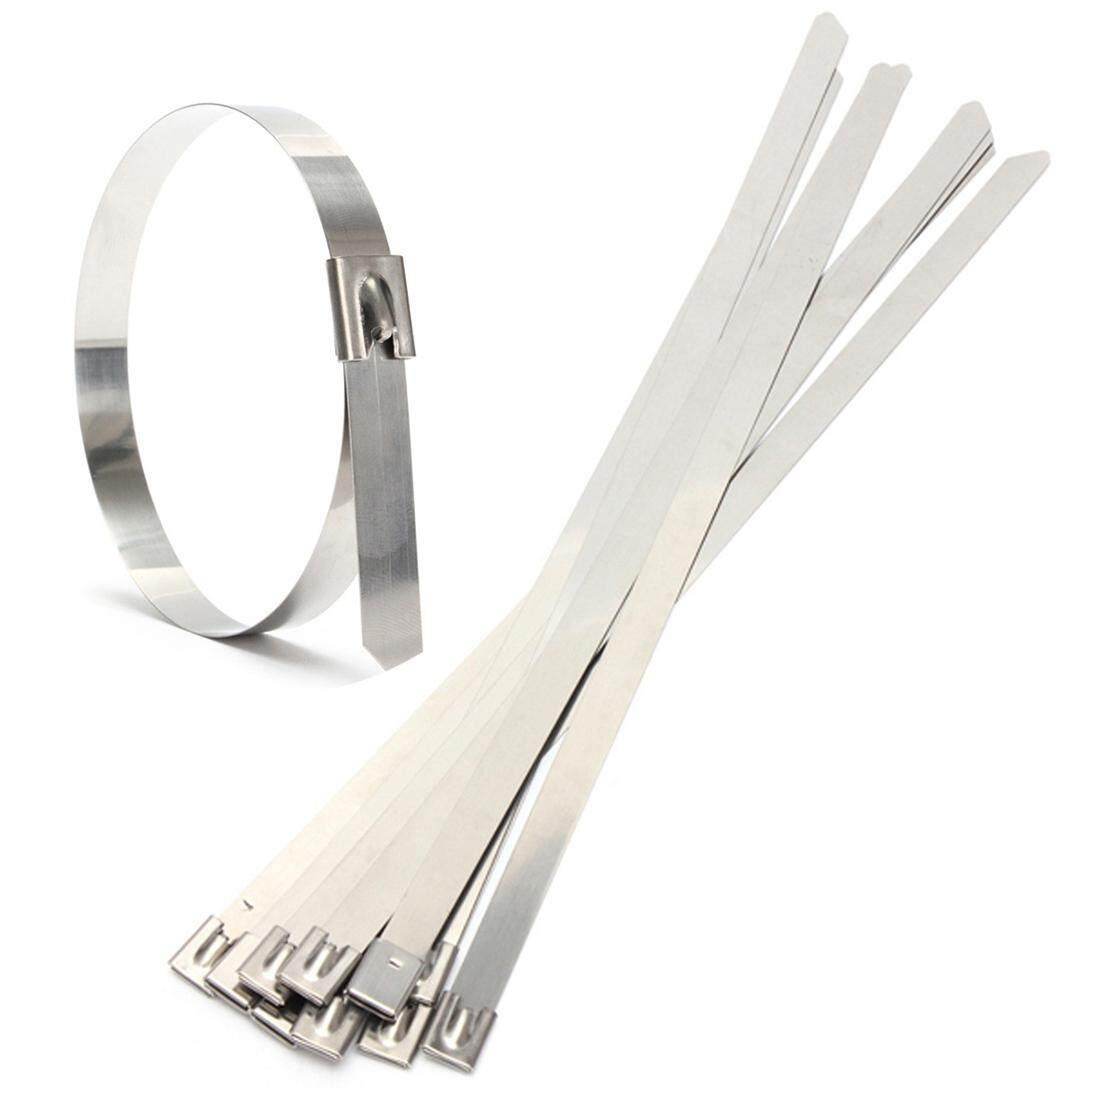 10 pcs 0.39 x 15.75 Stainless Steel Metal Cable Zip Tie Wrap Exhaust Straps